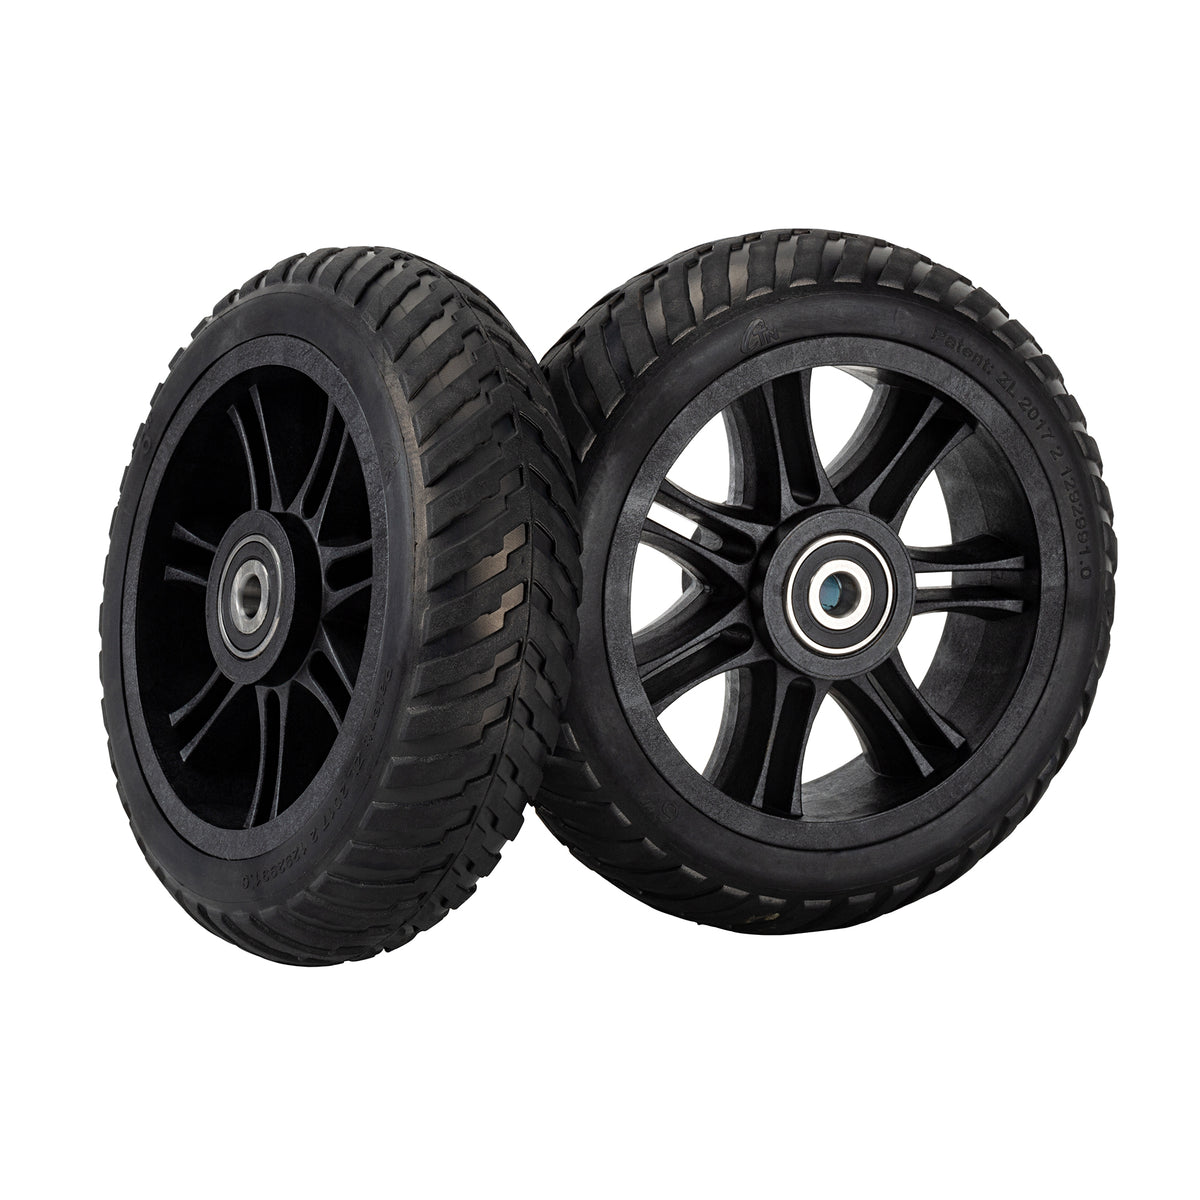 Honeycomb Aireless Rubber Tires For The Backfire Ranger X1